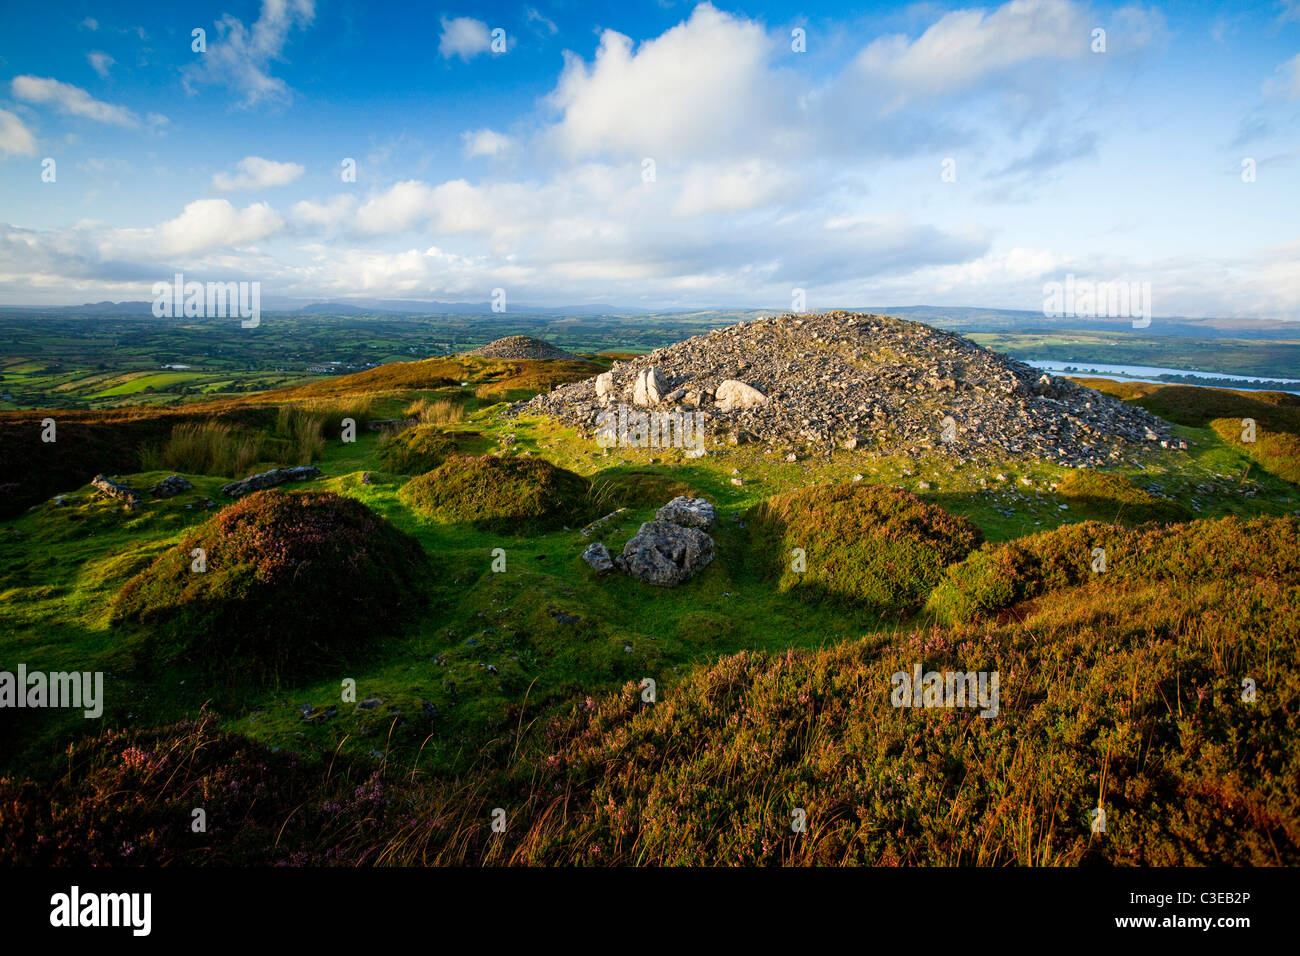 Carrowkeel Passage Tombs, which date from 3200-2400 BC, County Sligo, Ireland. Stock Photo